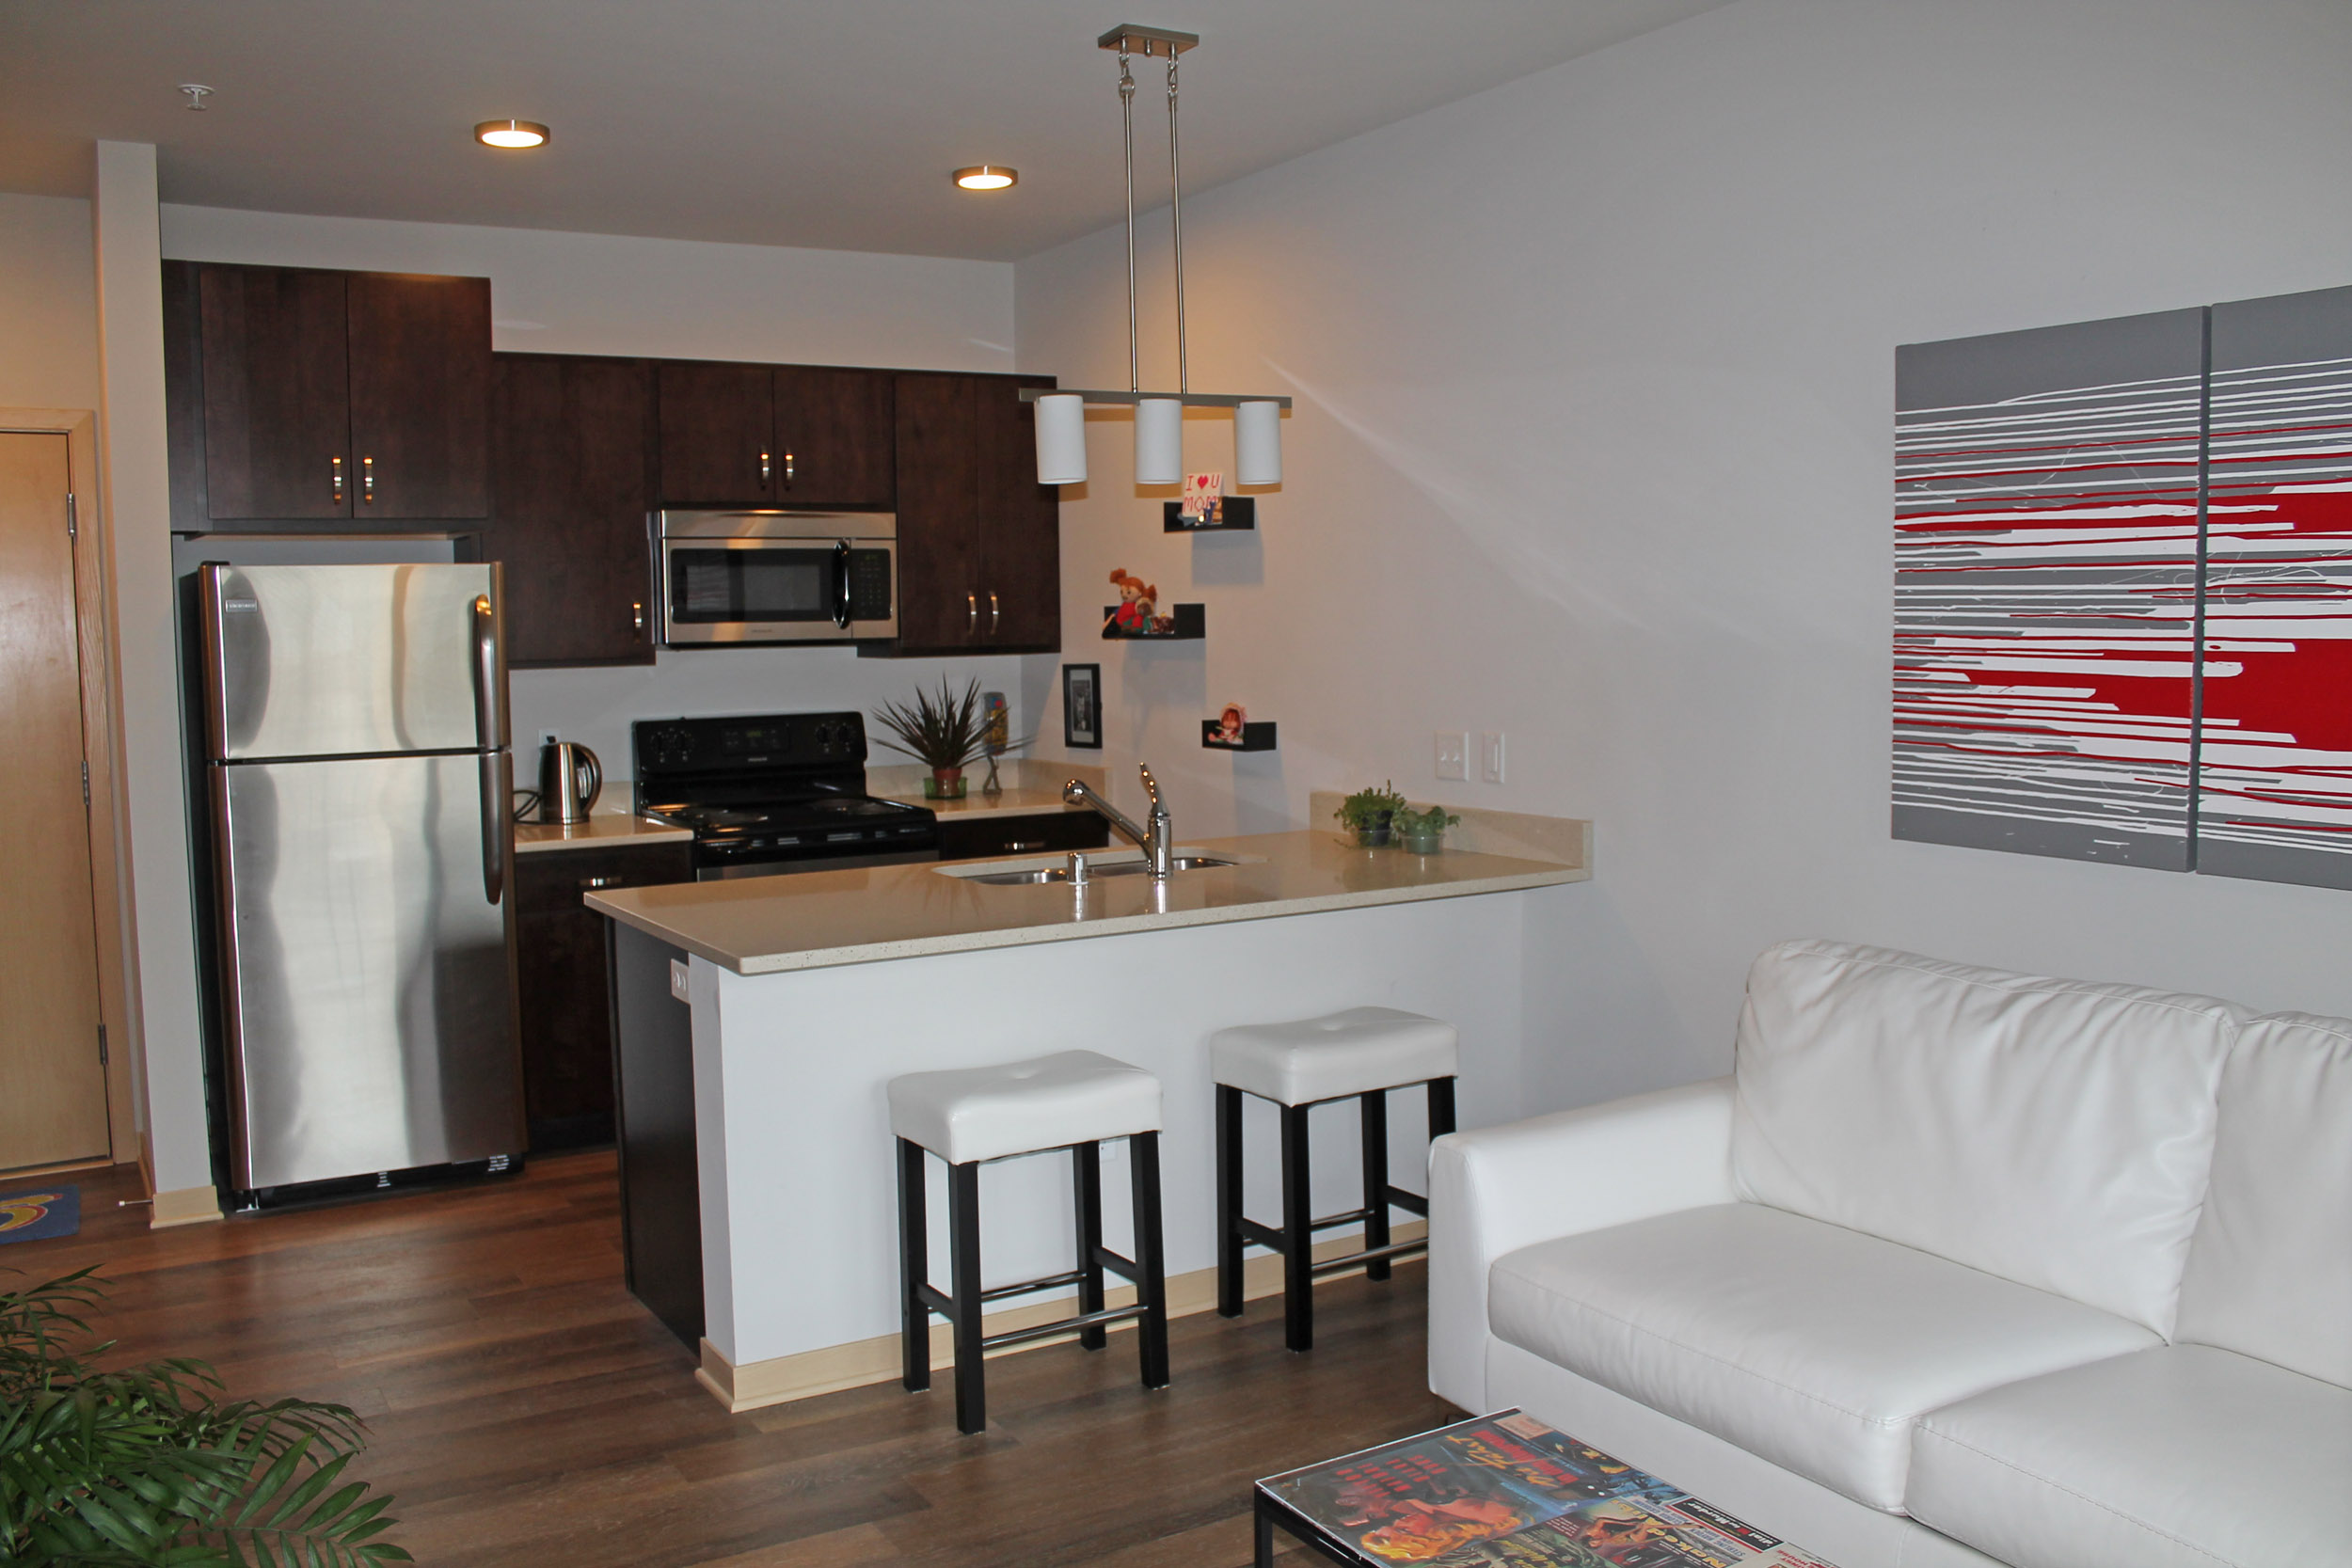 Capitol's Edge Apartments - Living Room Kitchen